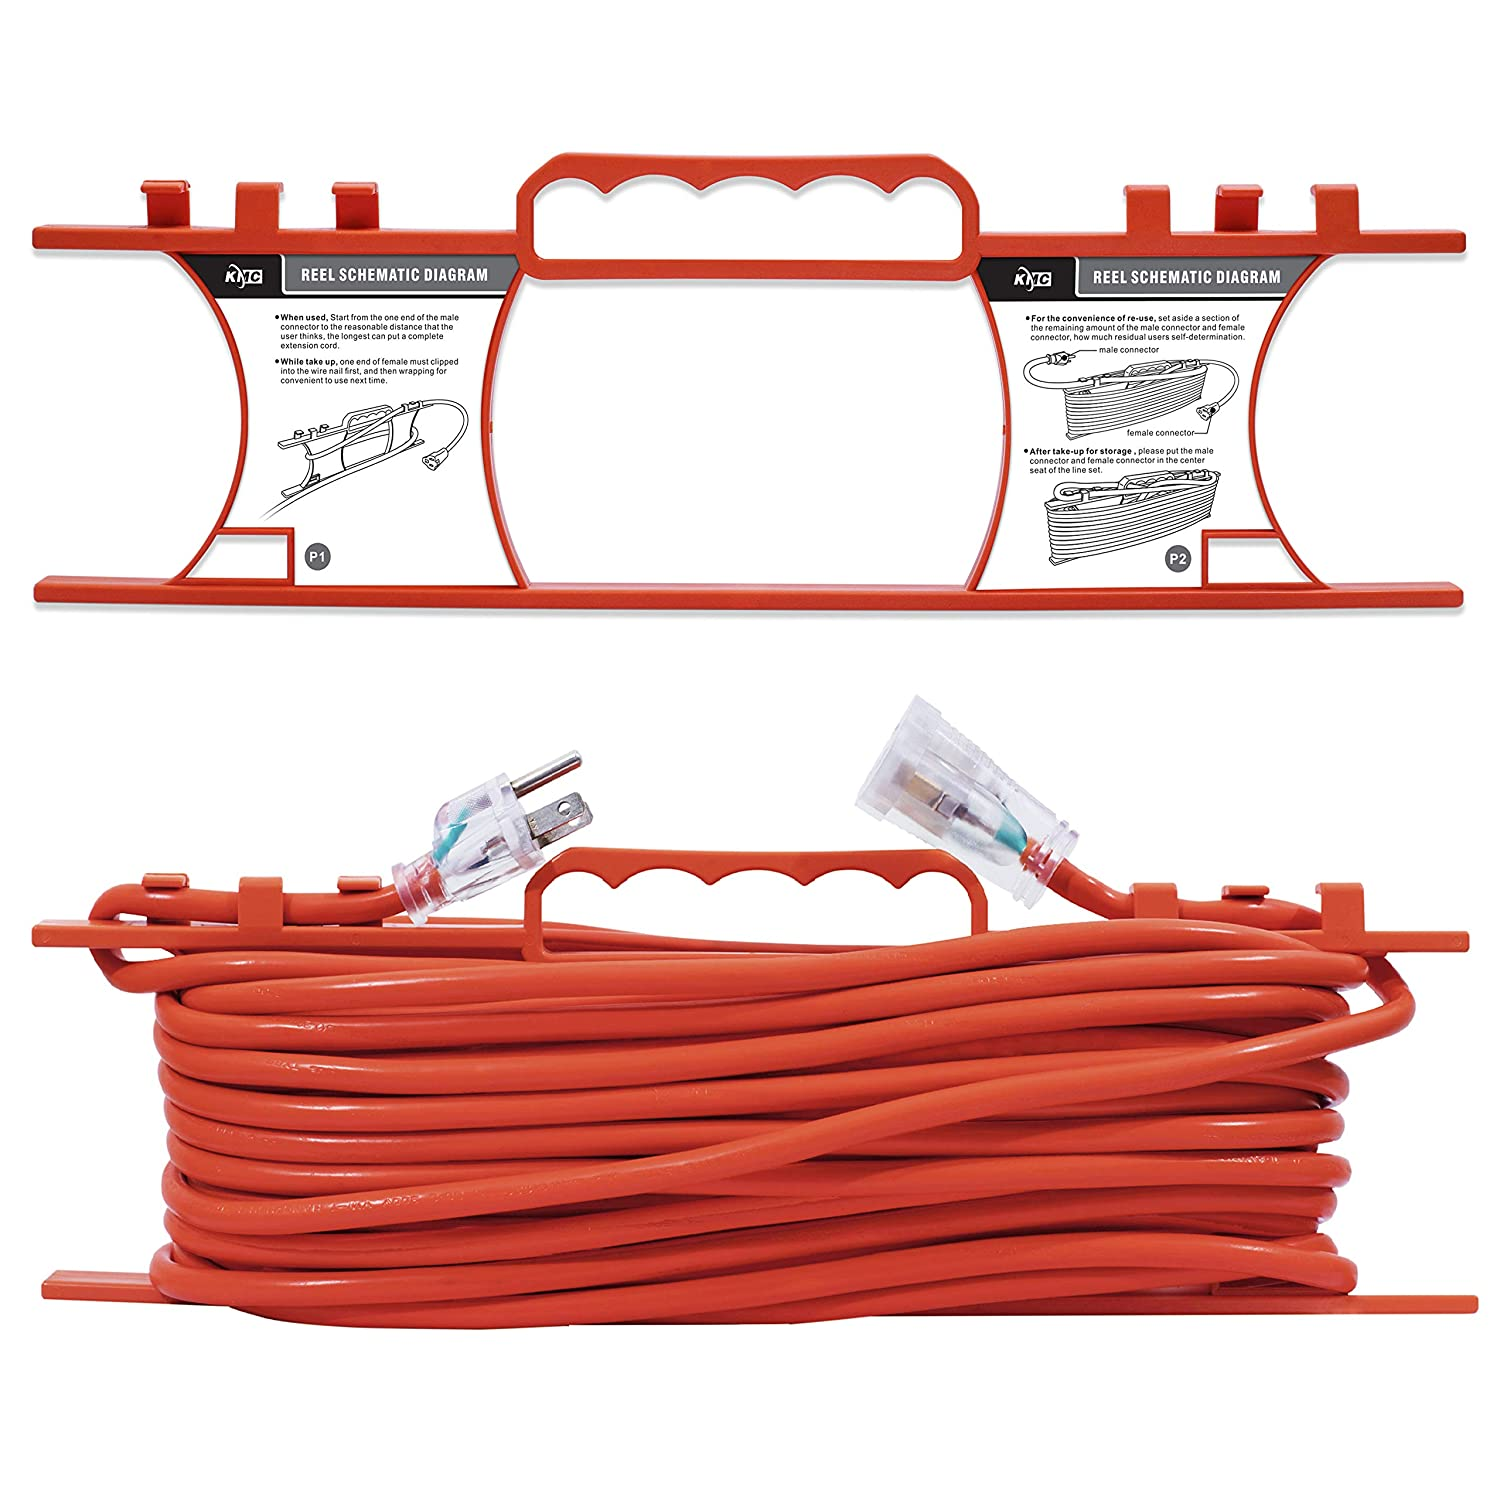 Orange Extension Cord Wiring Diagram Archive Of Automotive Wire Amazon Com Kmc 16 Awg Power Outdoor With Winding Rh